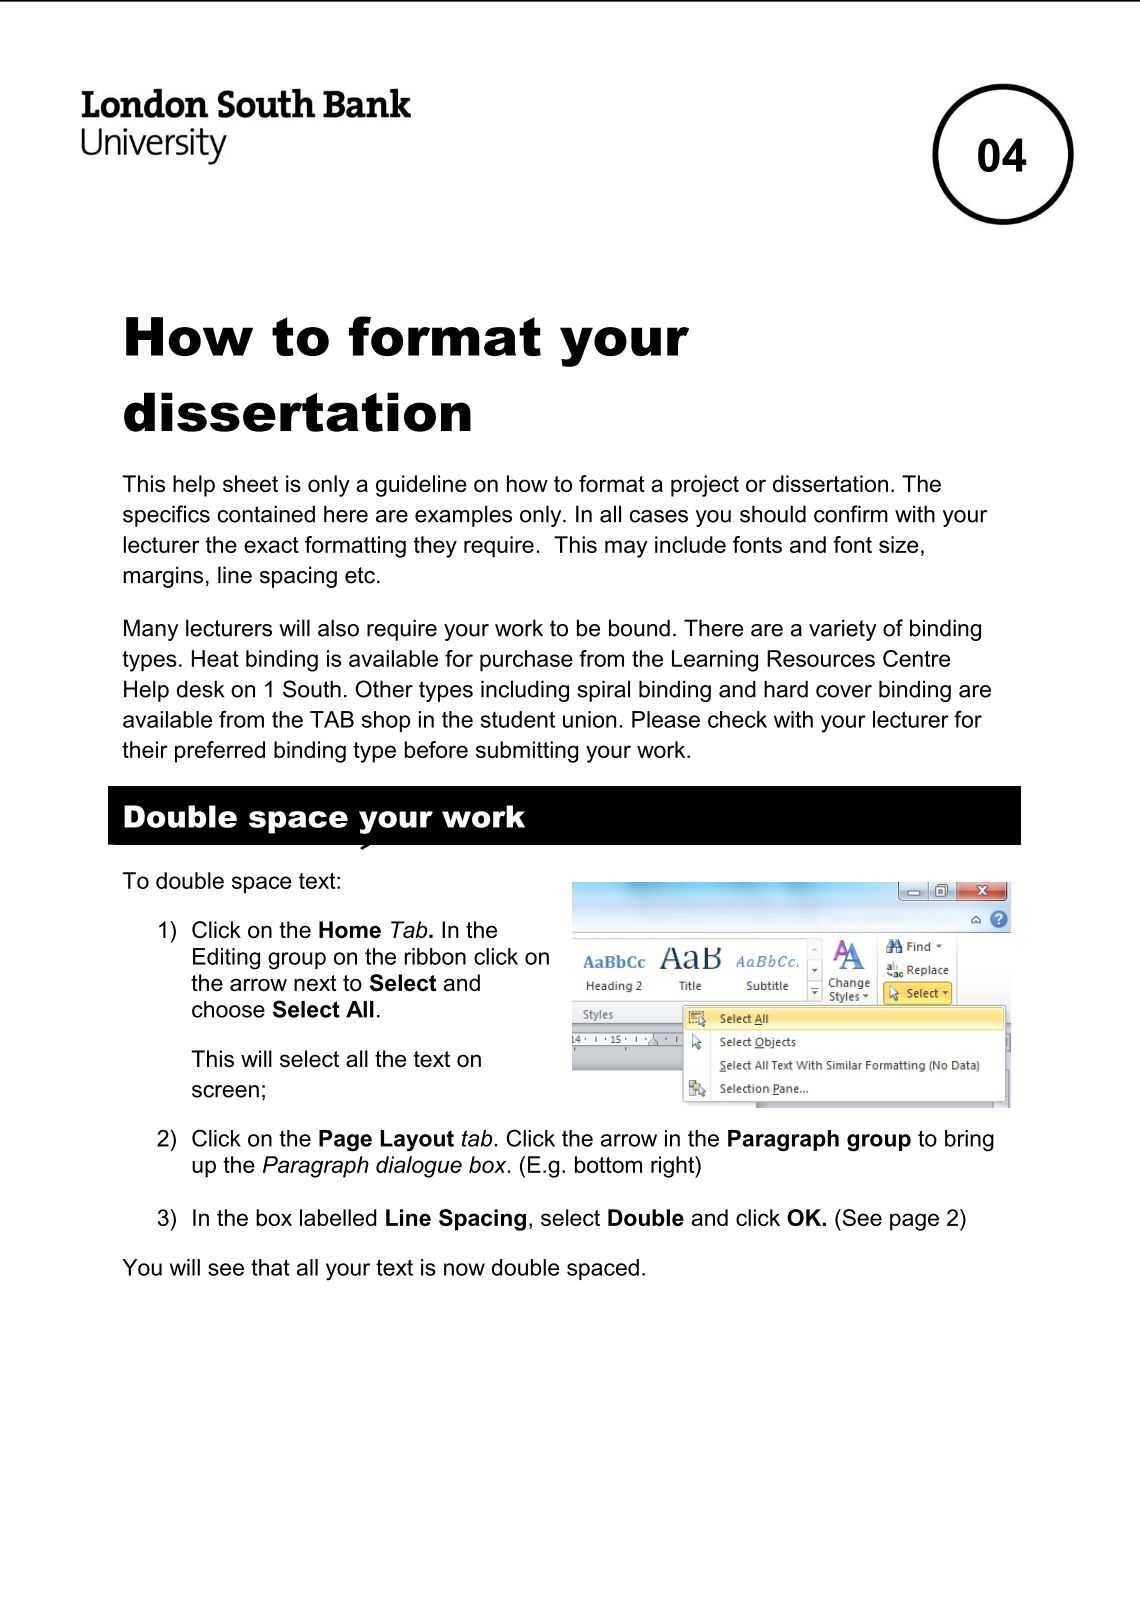 https://img.yumpu.com/13445517/1/1140x1616/how-to-format-your-dissertation-my-lsbu.jpg?quality=80